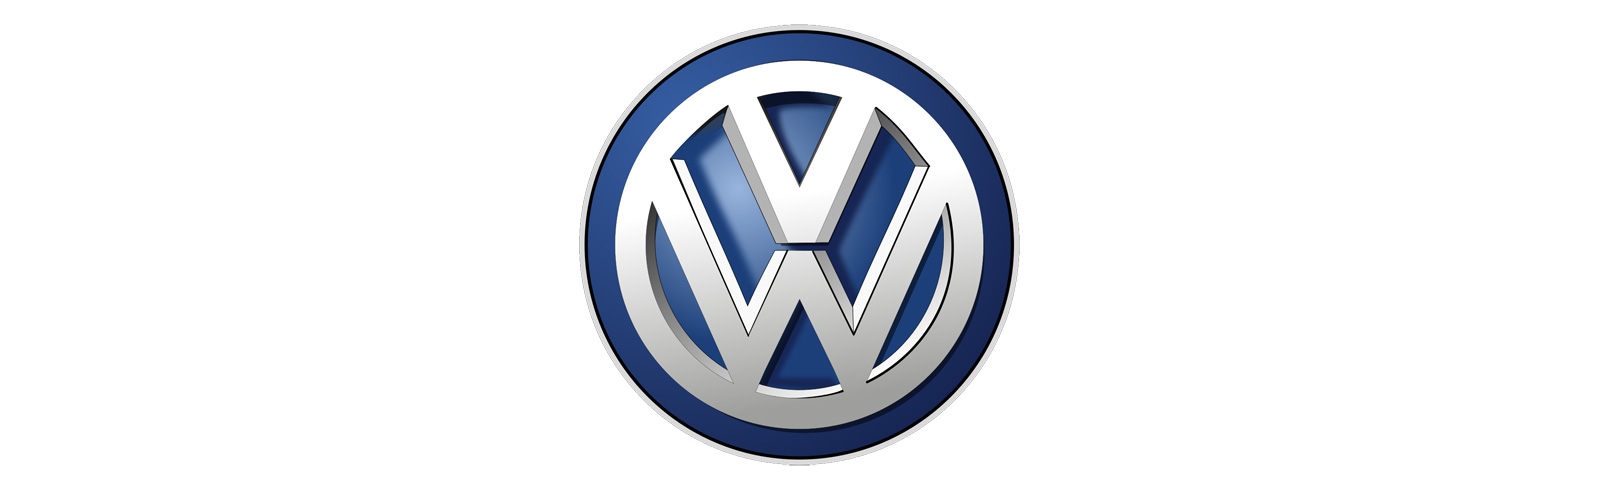 Volkswagen and Northvolt form the European Battery Union together with other EU partners